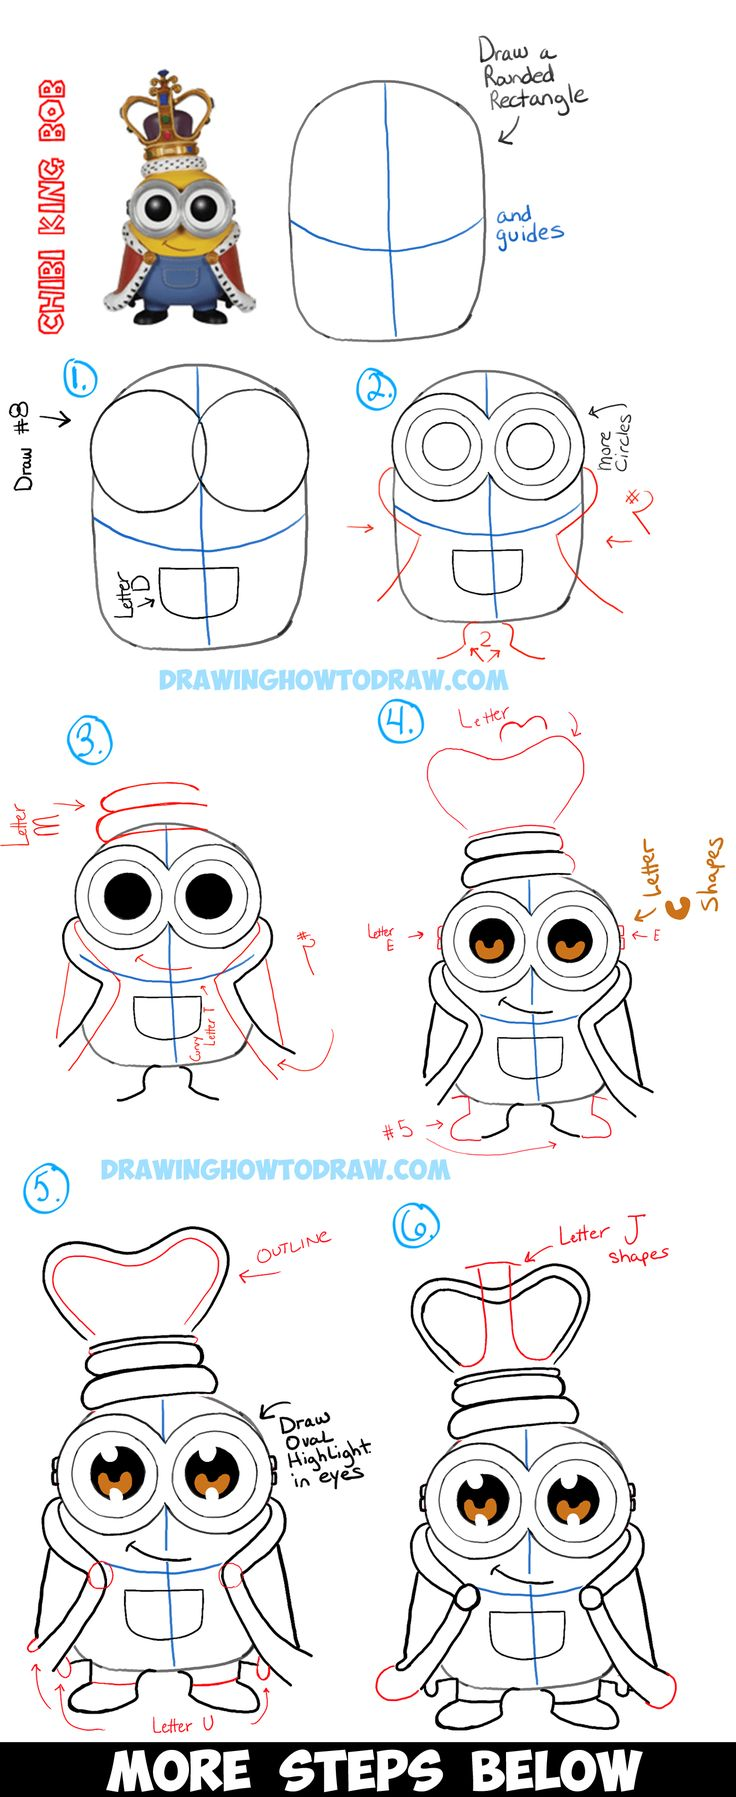 How to Draw Cute Chibi King Bob from The Minions Movie with Easy Tutorial